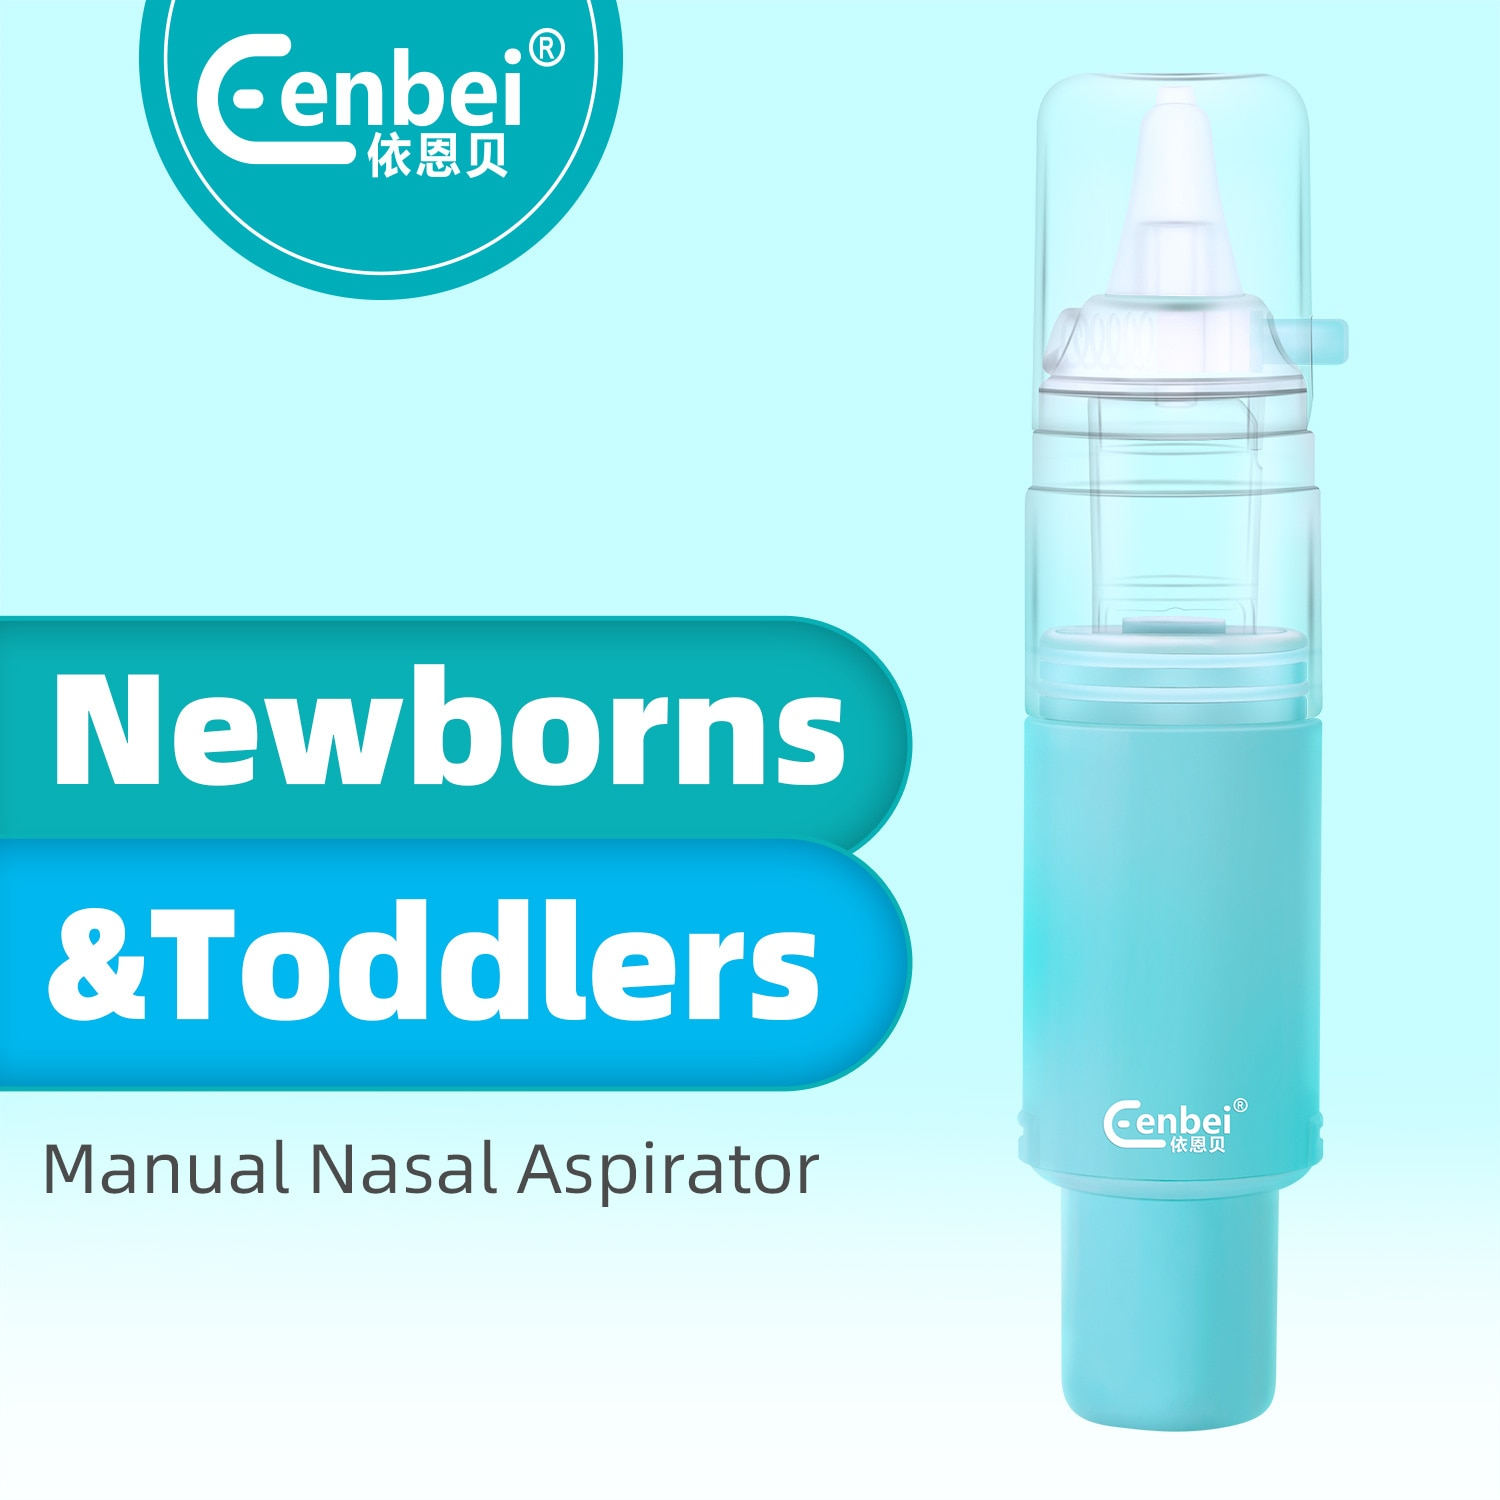 Eenbei Baby Nasal Aspirator Nose Cleaner Safe and Quick with 3 speeds Manual Snot Sucker for Newborns and Toddlers effcient gift